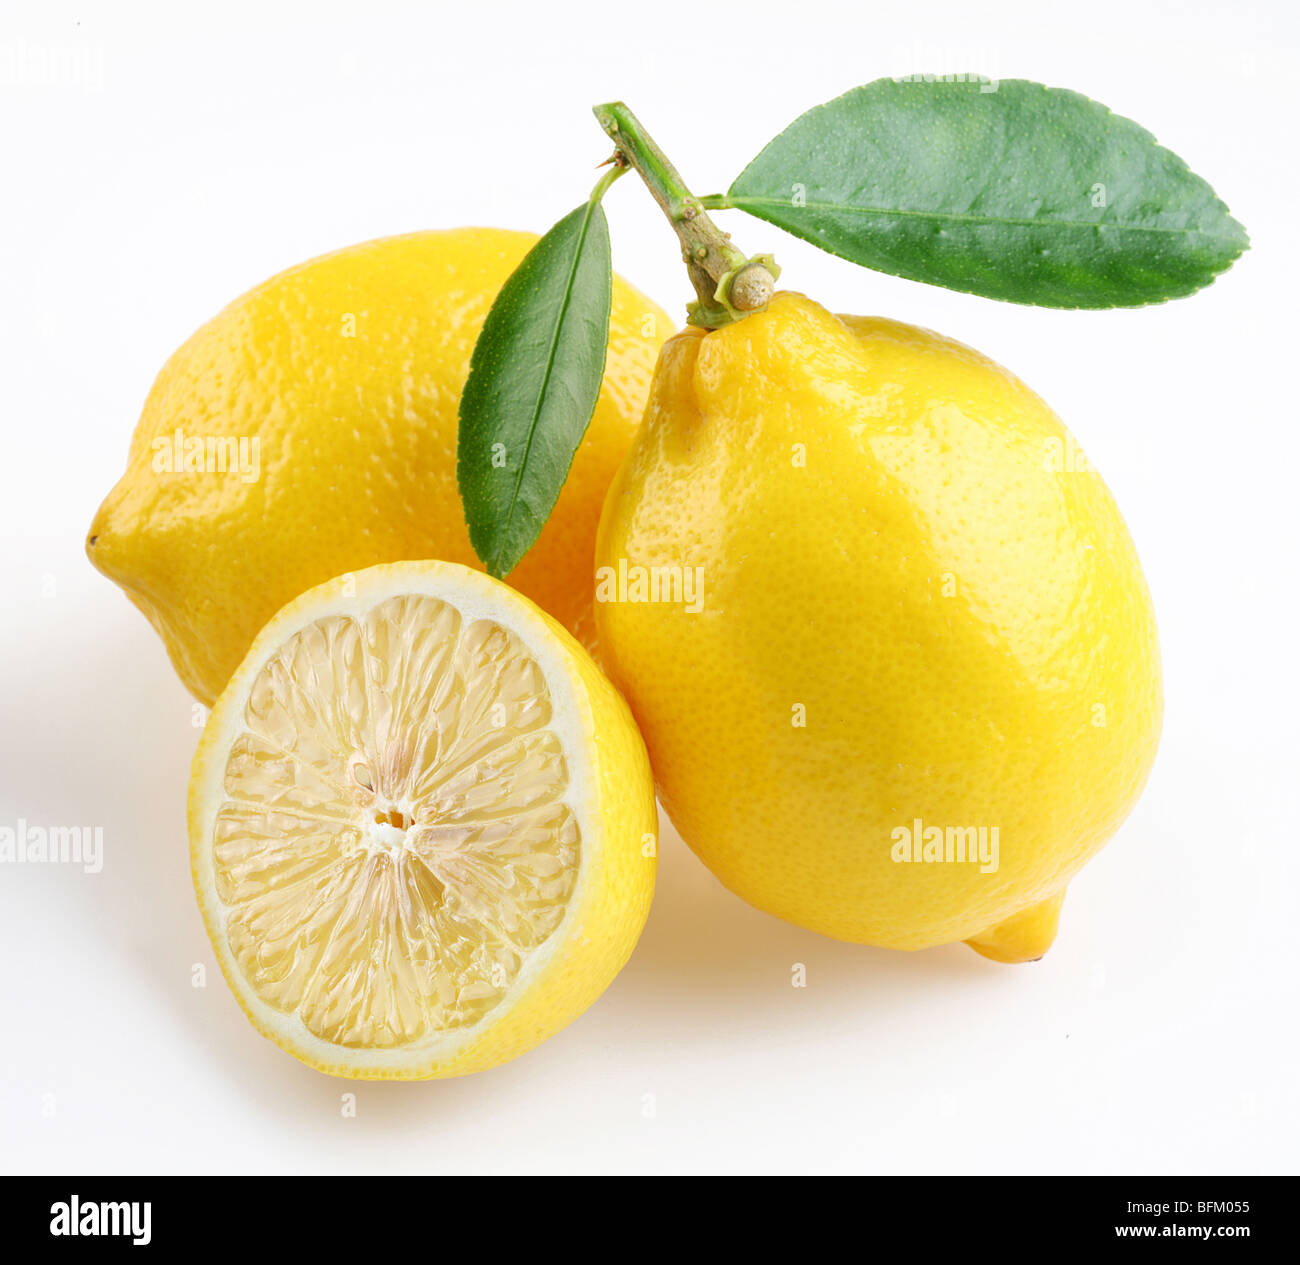 Lemon with section on a white background - Stock Image